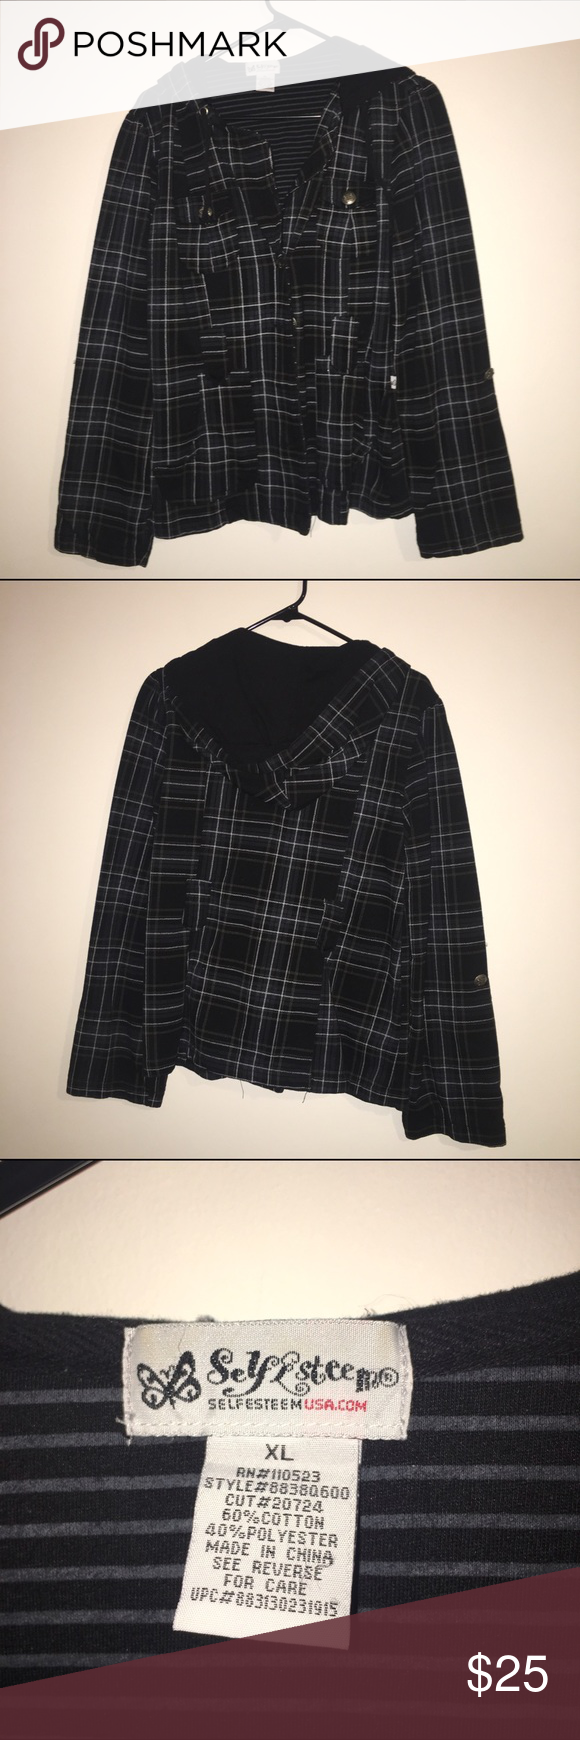 Adorable plaid coat Gently worn, in great condition! Plaid coat perfect to dress up any evening, or for any weekend outfit :)   ⚓️ Only looking to sell my items  ⚓️ I do not trade, so please don't ask  ⚓️ I only use Poshmark™ ⚓️ I do not negotiate prices in comments  ⚓️ Use offer button- not all prices are firm!  ⚓️ Add to bundle and SAVE!  ⚓️ Thanks for visiting! Happy Poshing!! Self Esteem Jackets & Coats